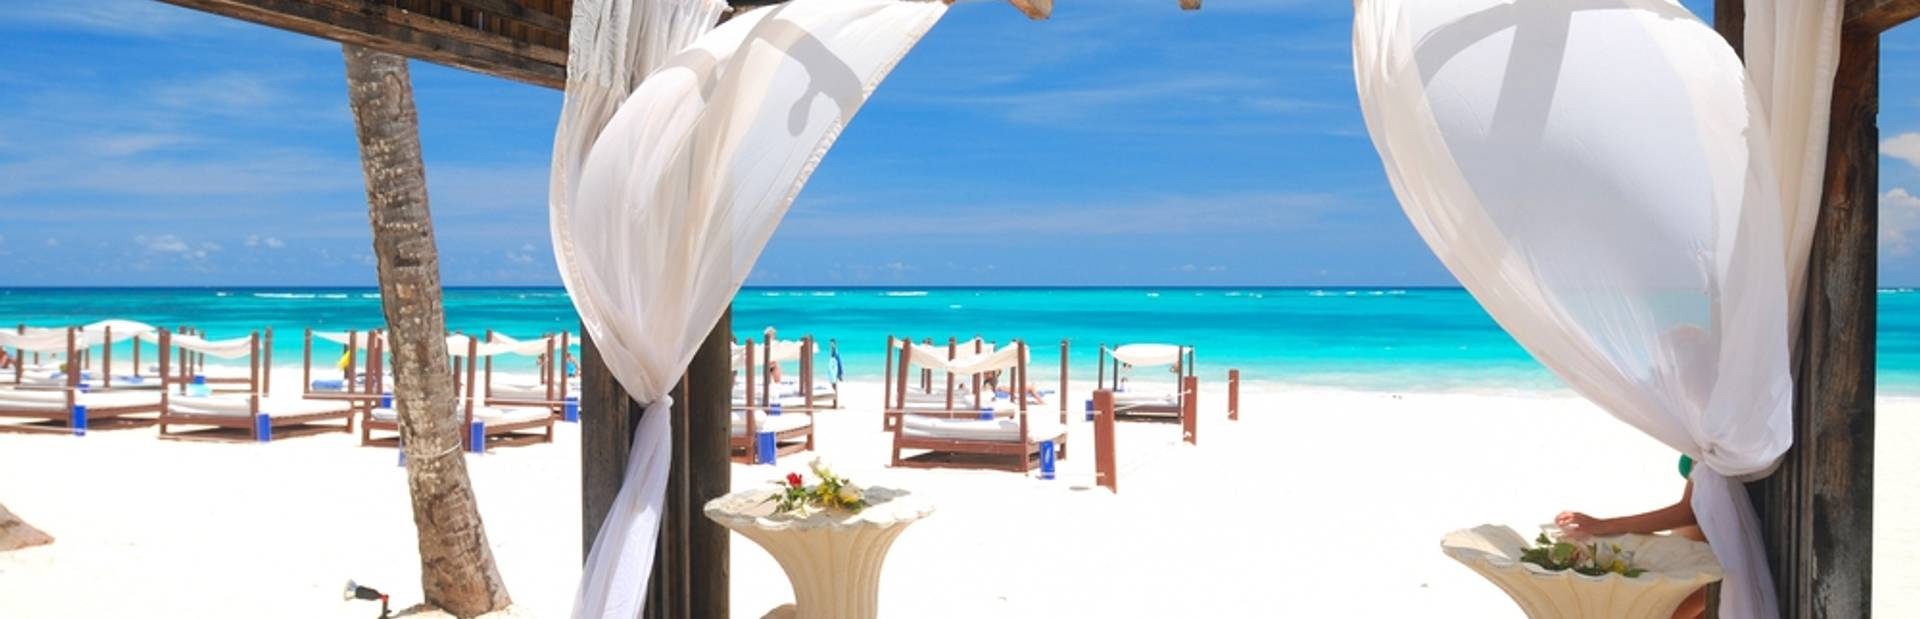 Wooden gazebo with white waving curtains on the beach